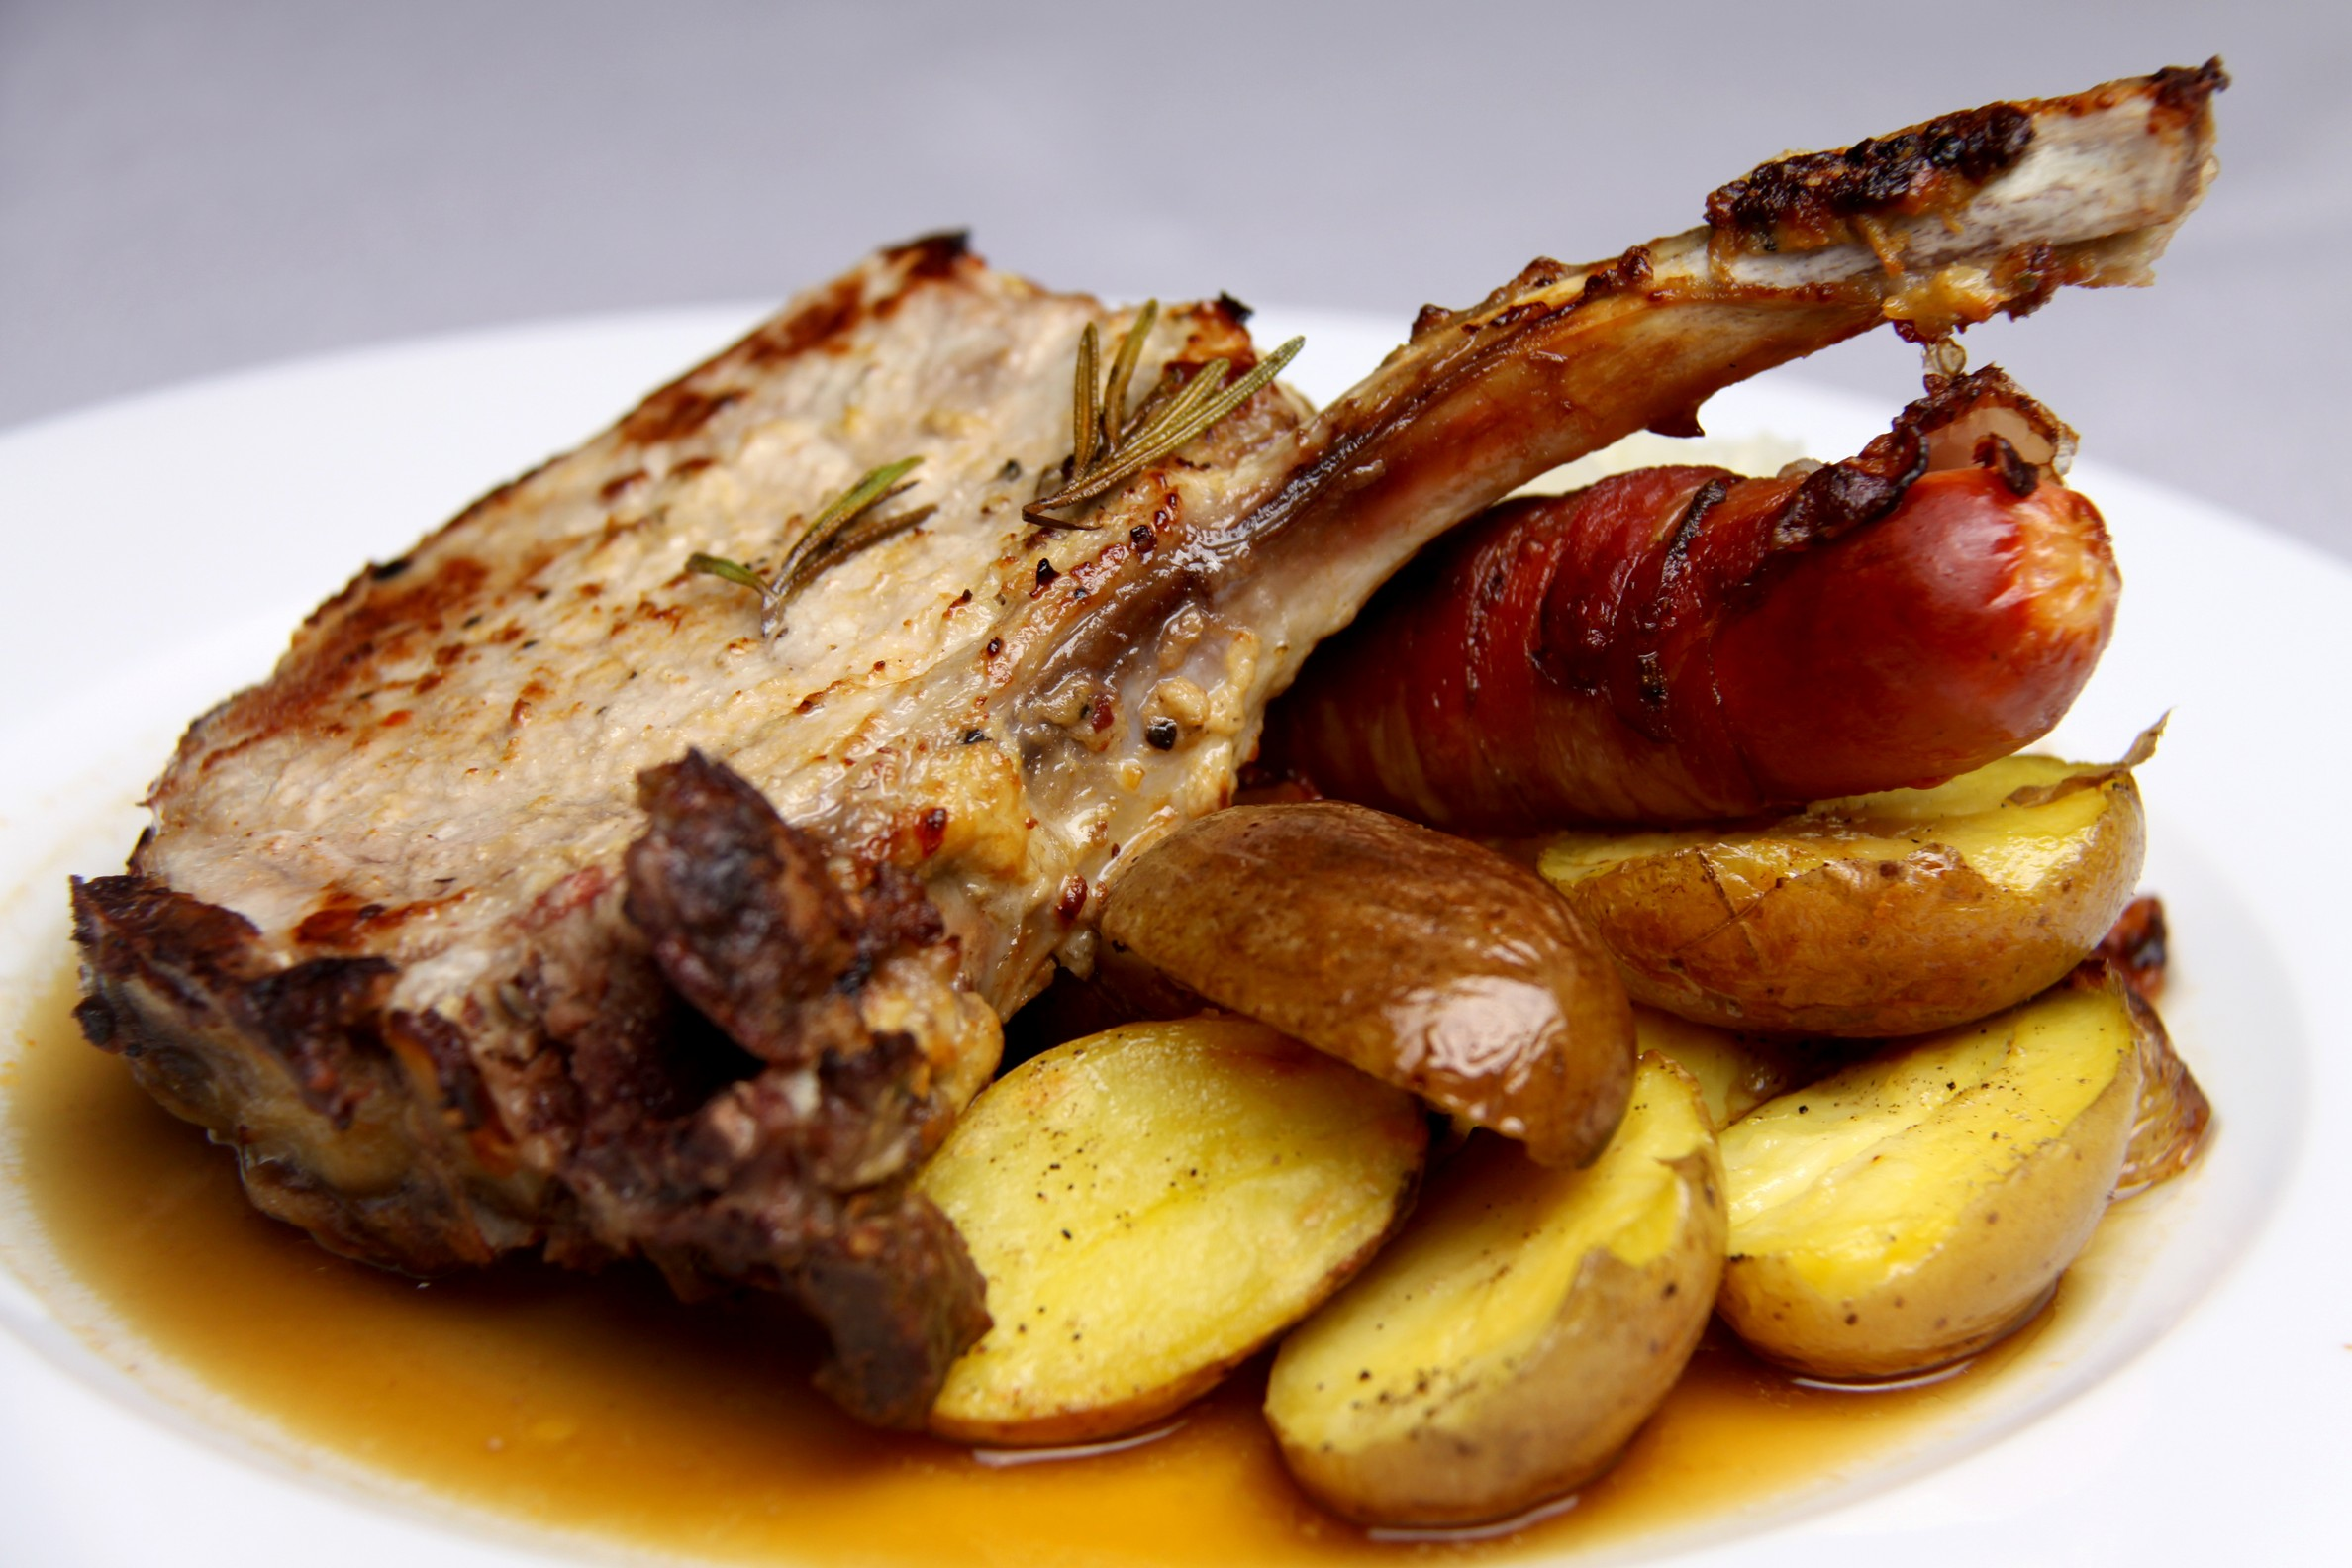 Pork chop with sour cabbage and sausage in bacon coat